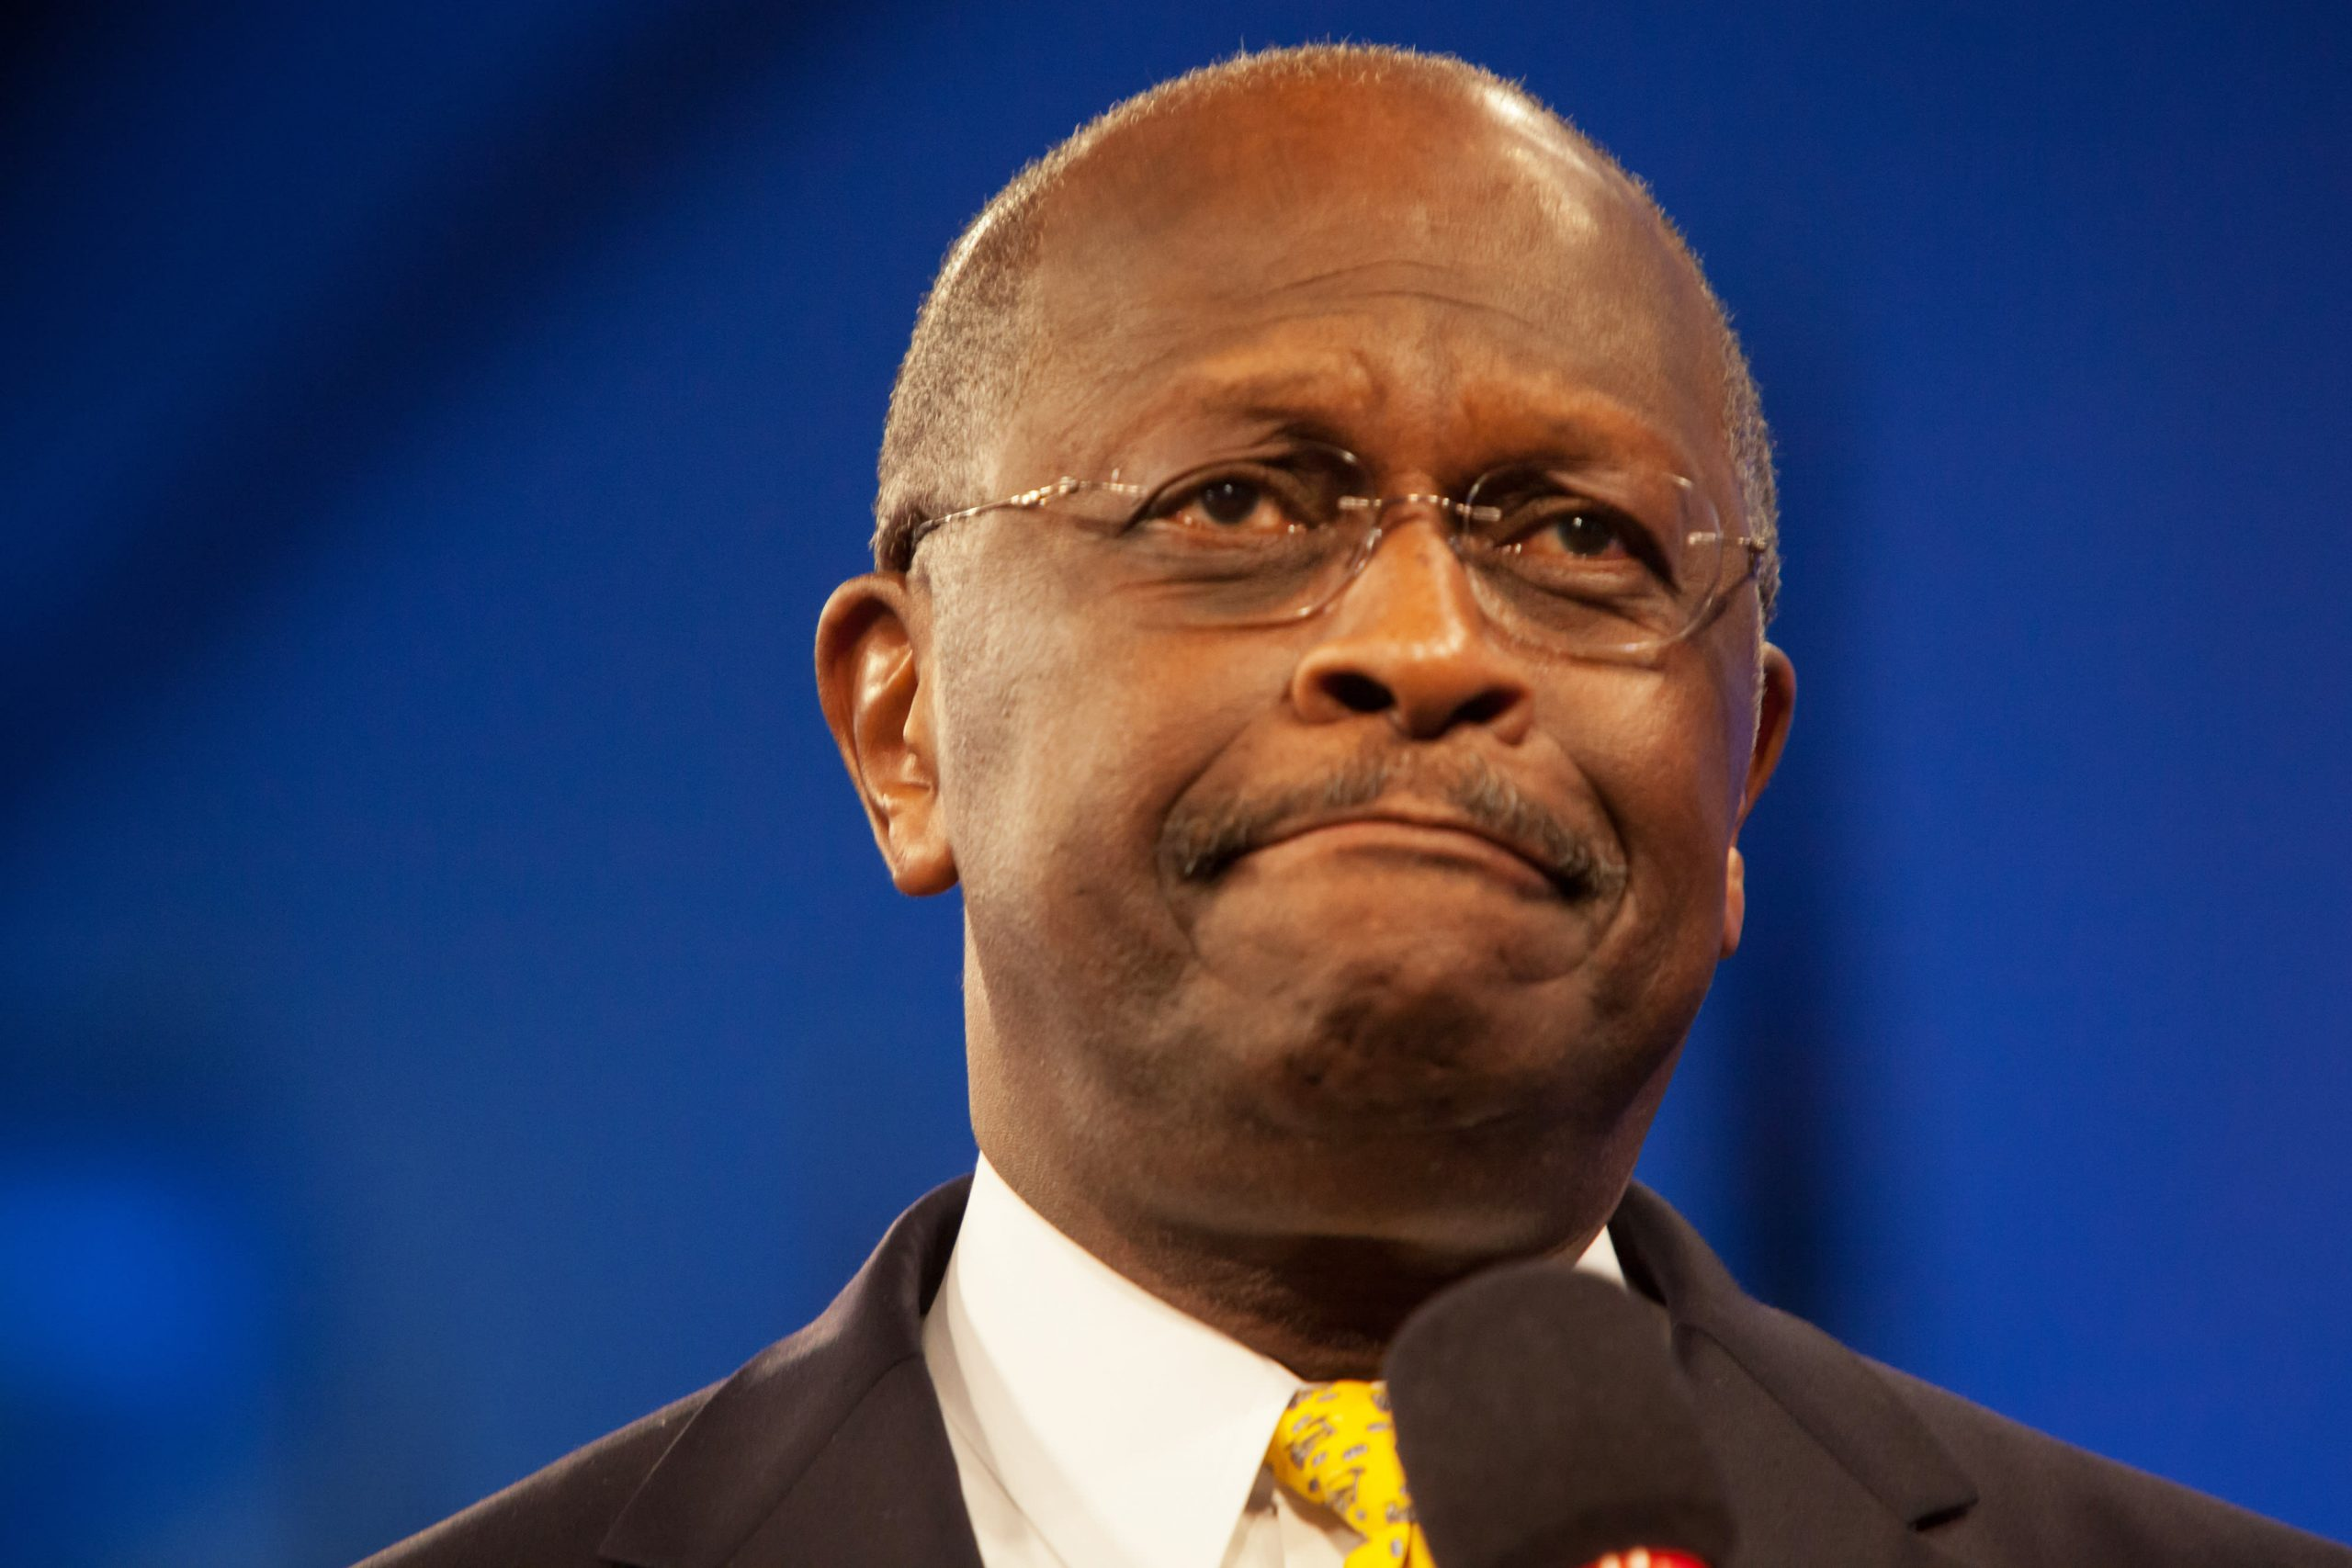 Herman Cain, former GOP presidential candidate, dies after battle with coronavirus